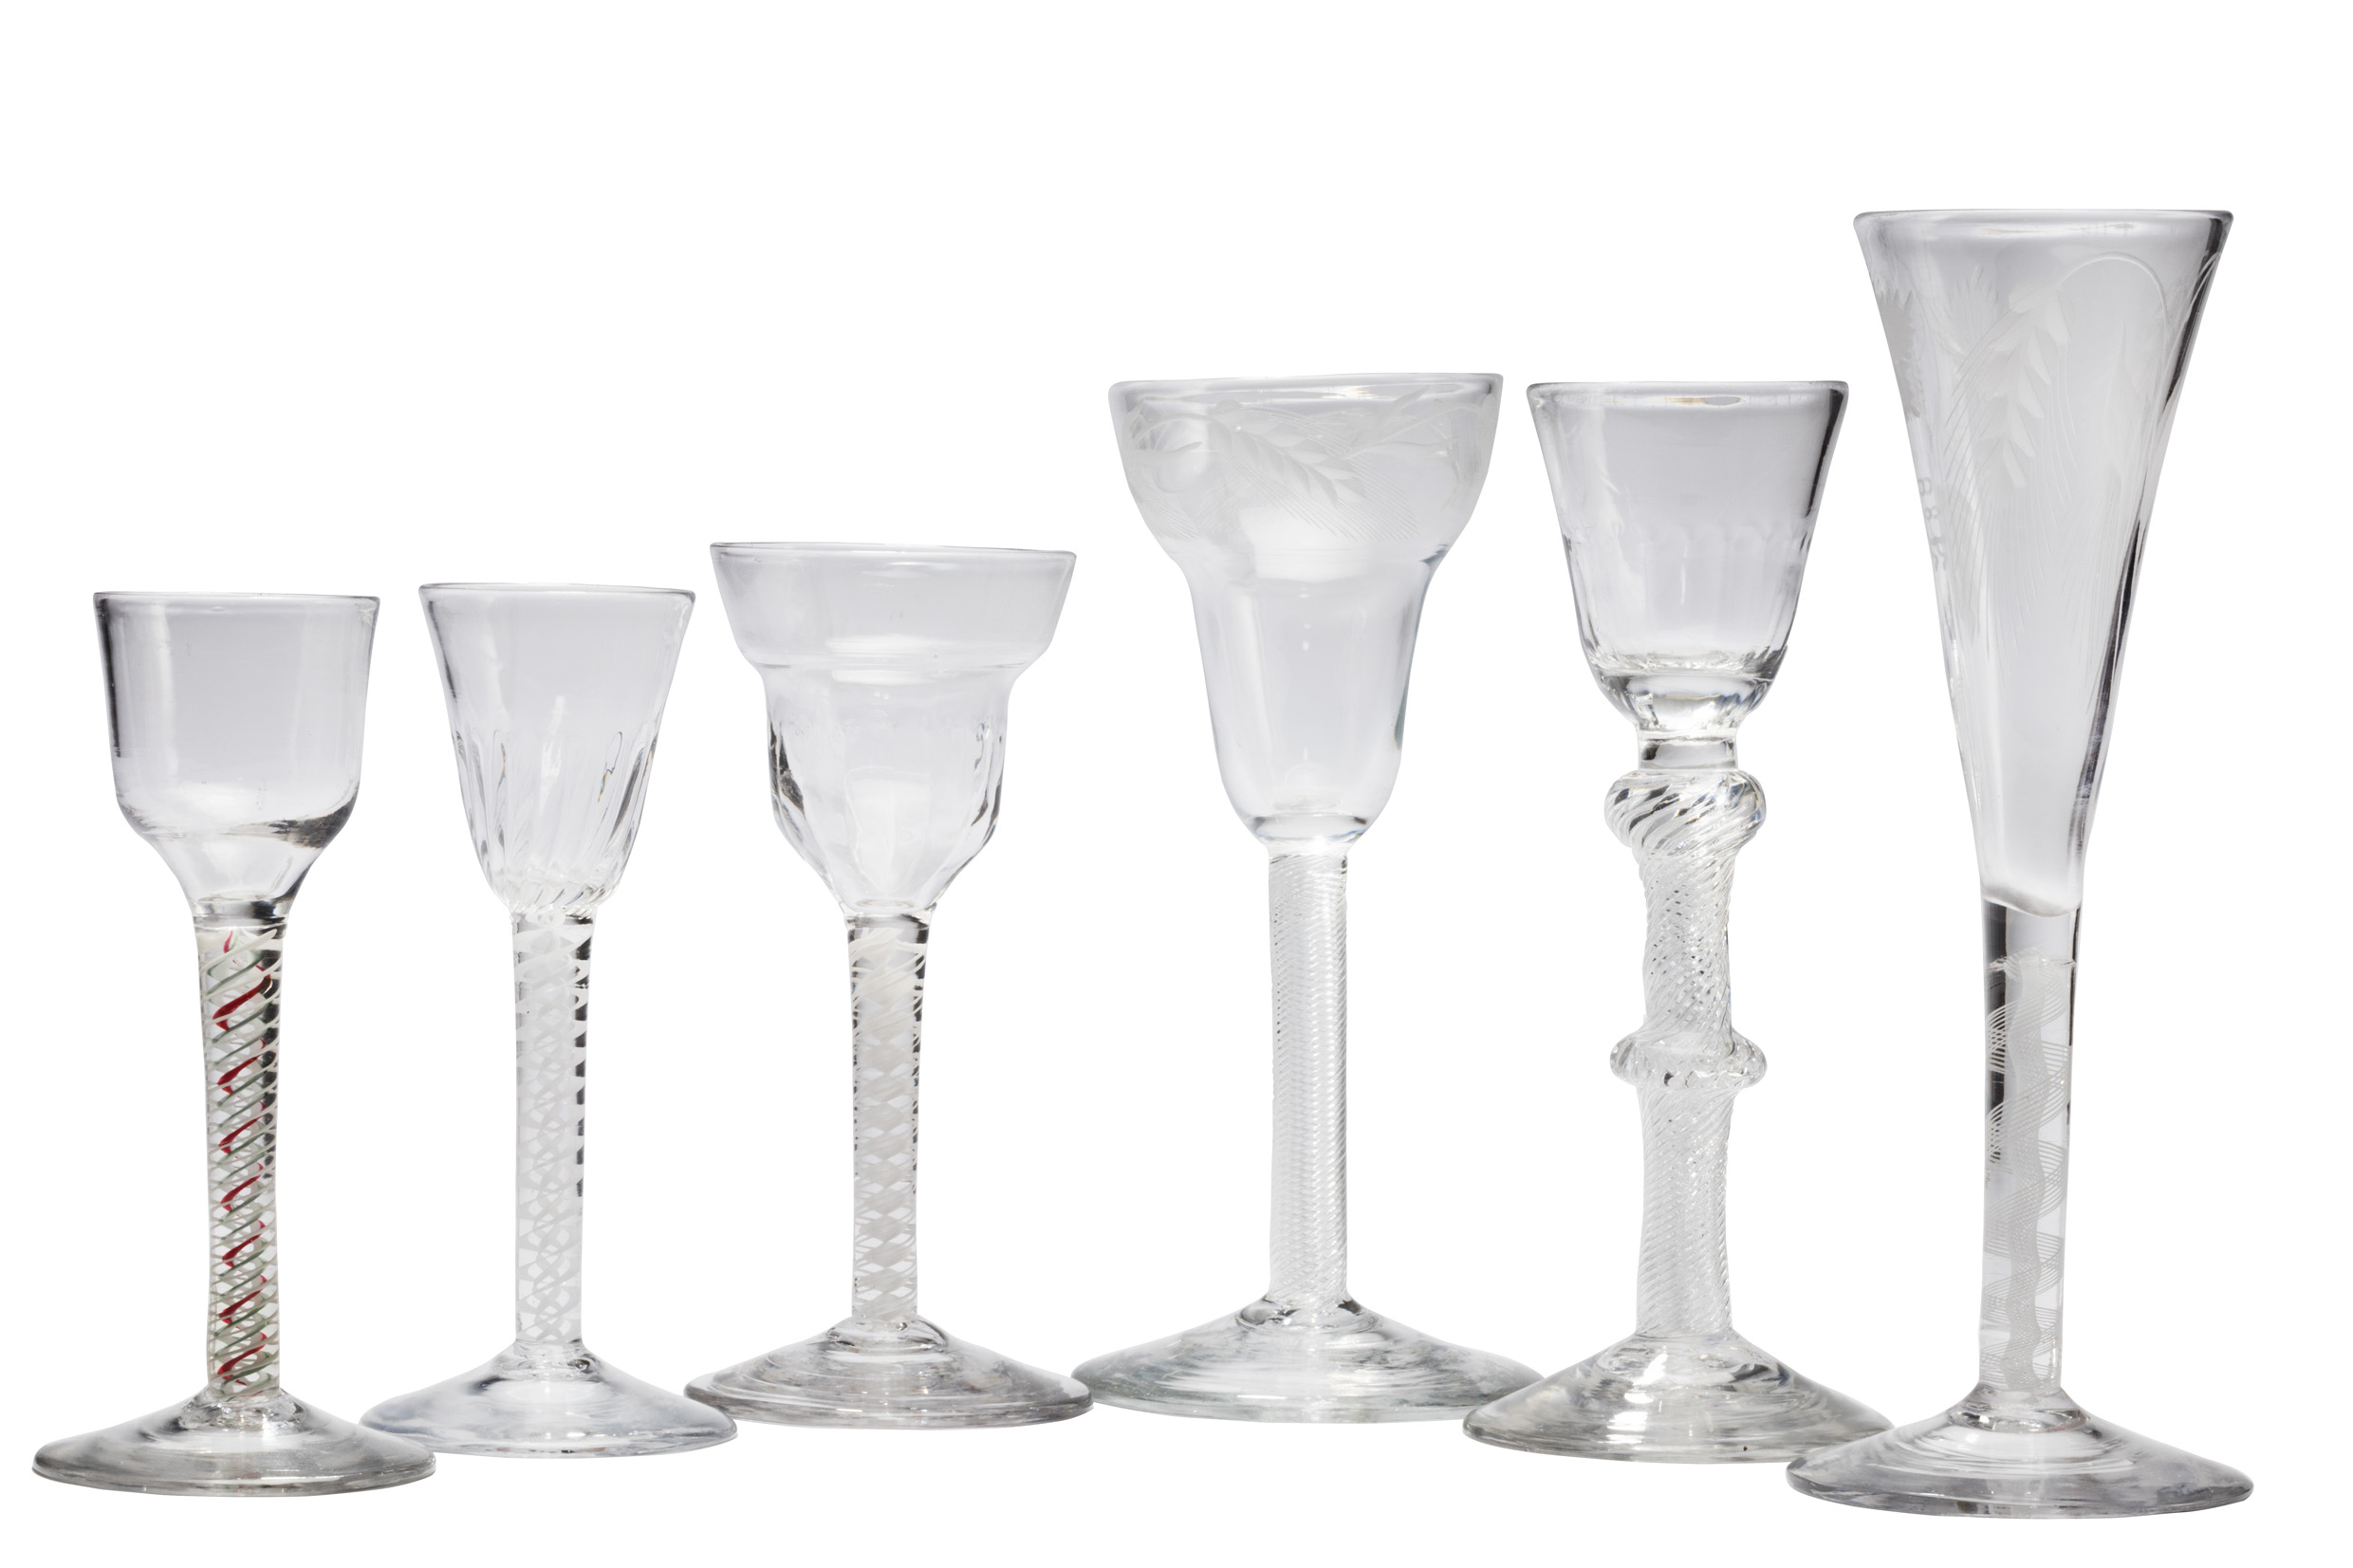 Antiques News - Antique Fair - Filemans Antiques - Selection of 18th century spiral stemmed wine glasses, £360-£3,600.